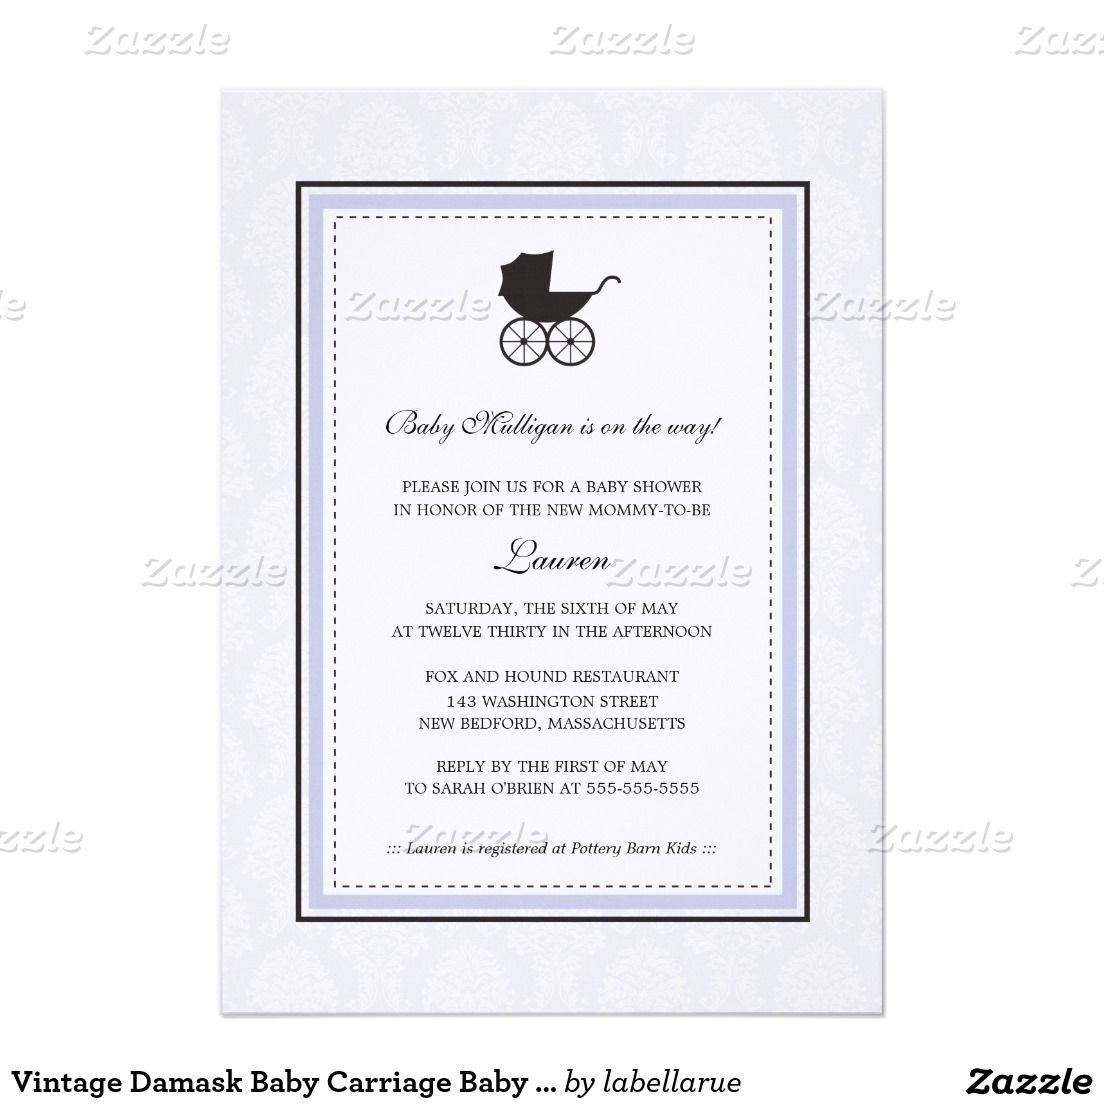 Vintage Damask Baby Carriage Baby Shower Card | Baby carriage ...